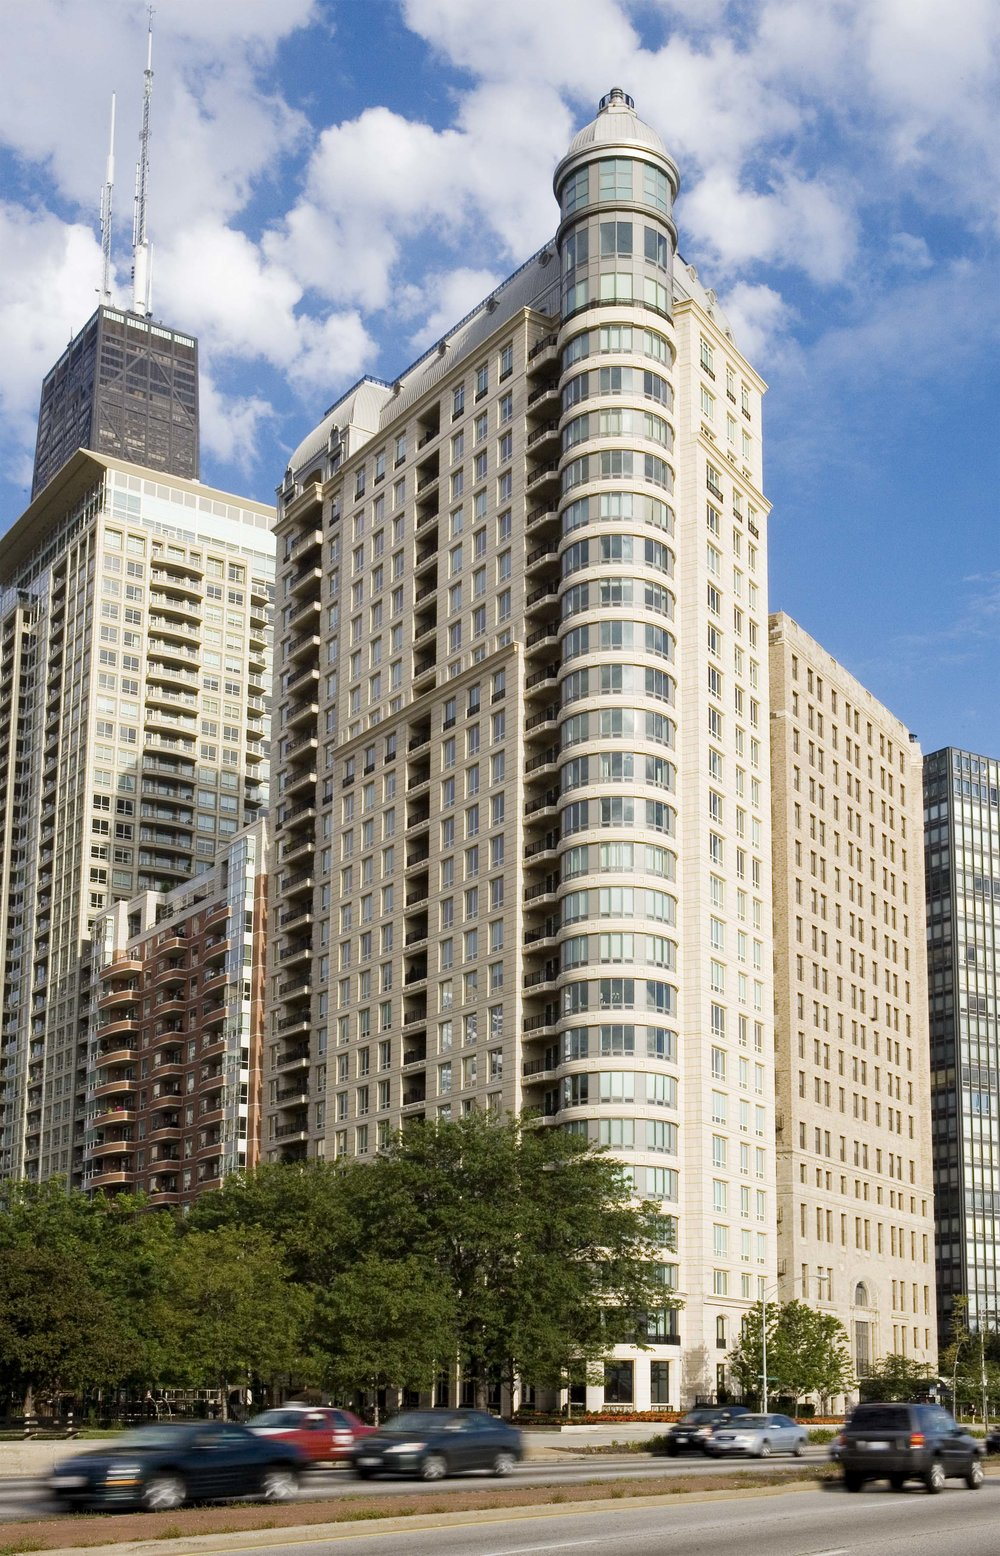 840 North Lake Shore Drive   840 North Lake Shore Drive  Chicago, Illinois    More information